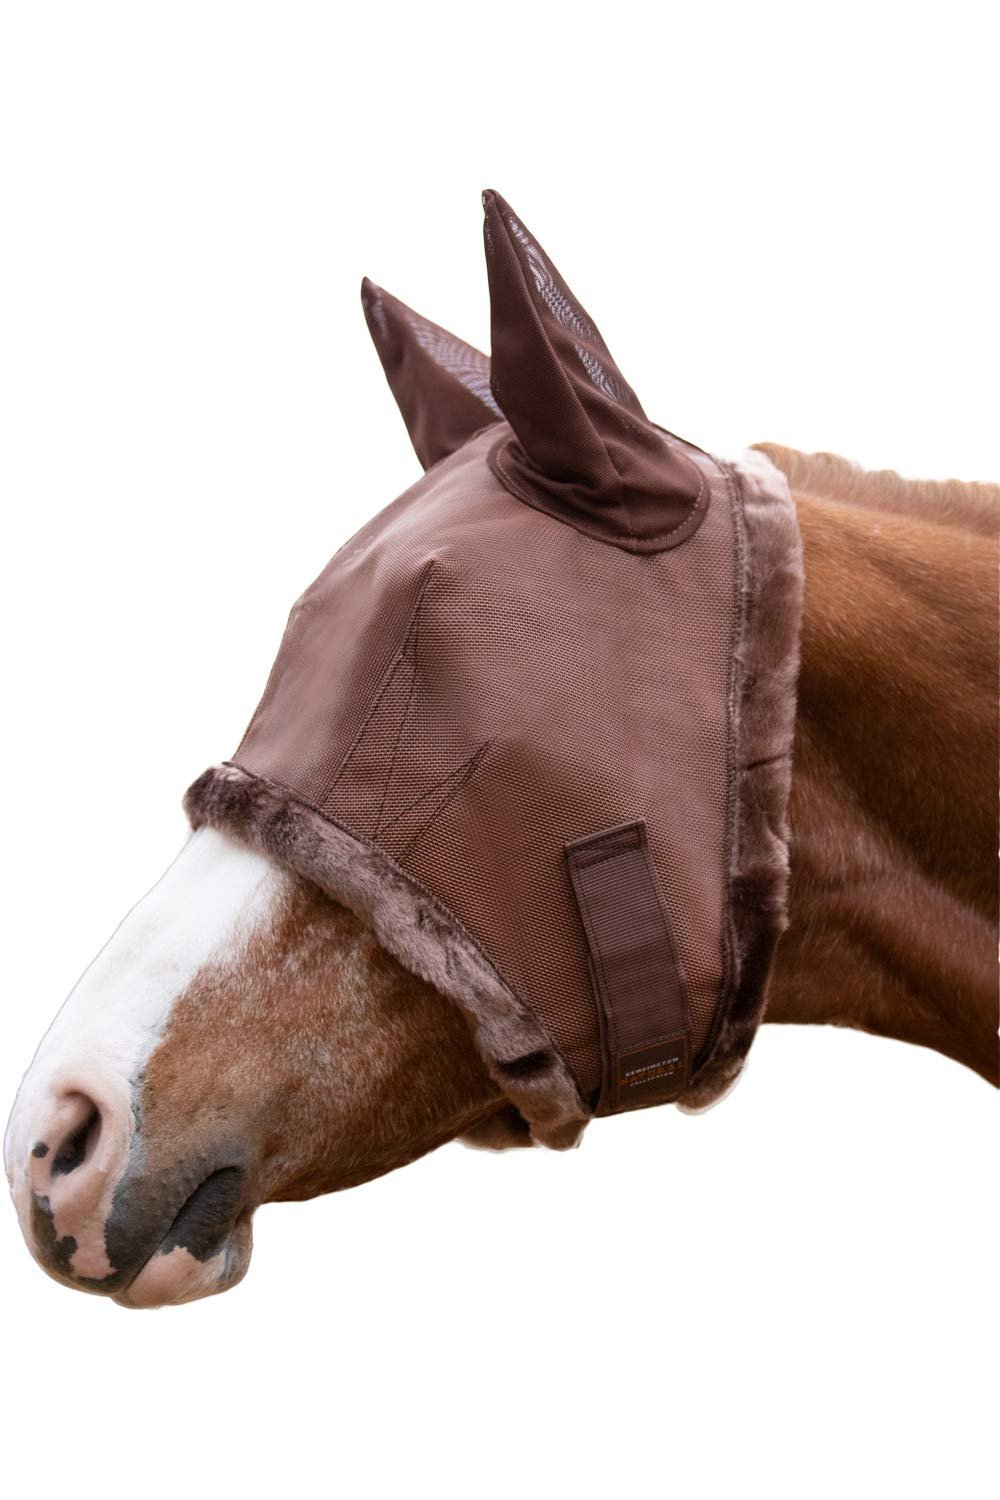 Kensington Fly Mask with Fleece Trim and Soft Ears - Allows Full Visibility with Maximum Protection -with Double Locking System - UV Protection (Medium, Natural Bay)...